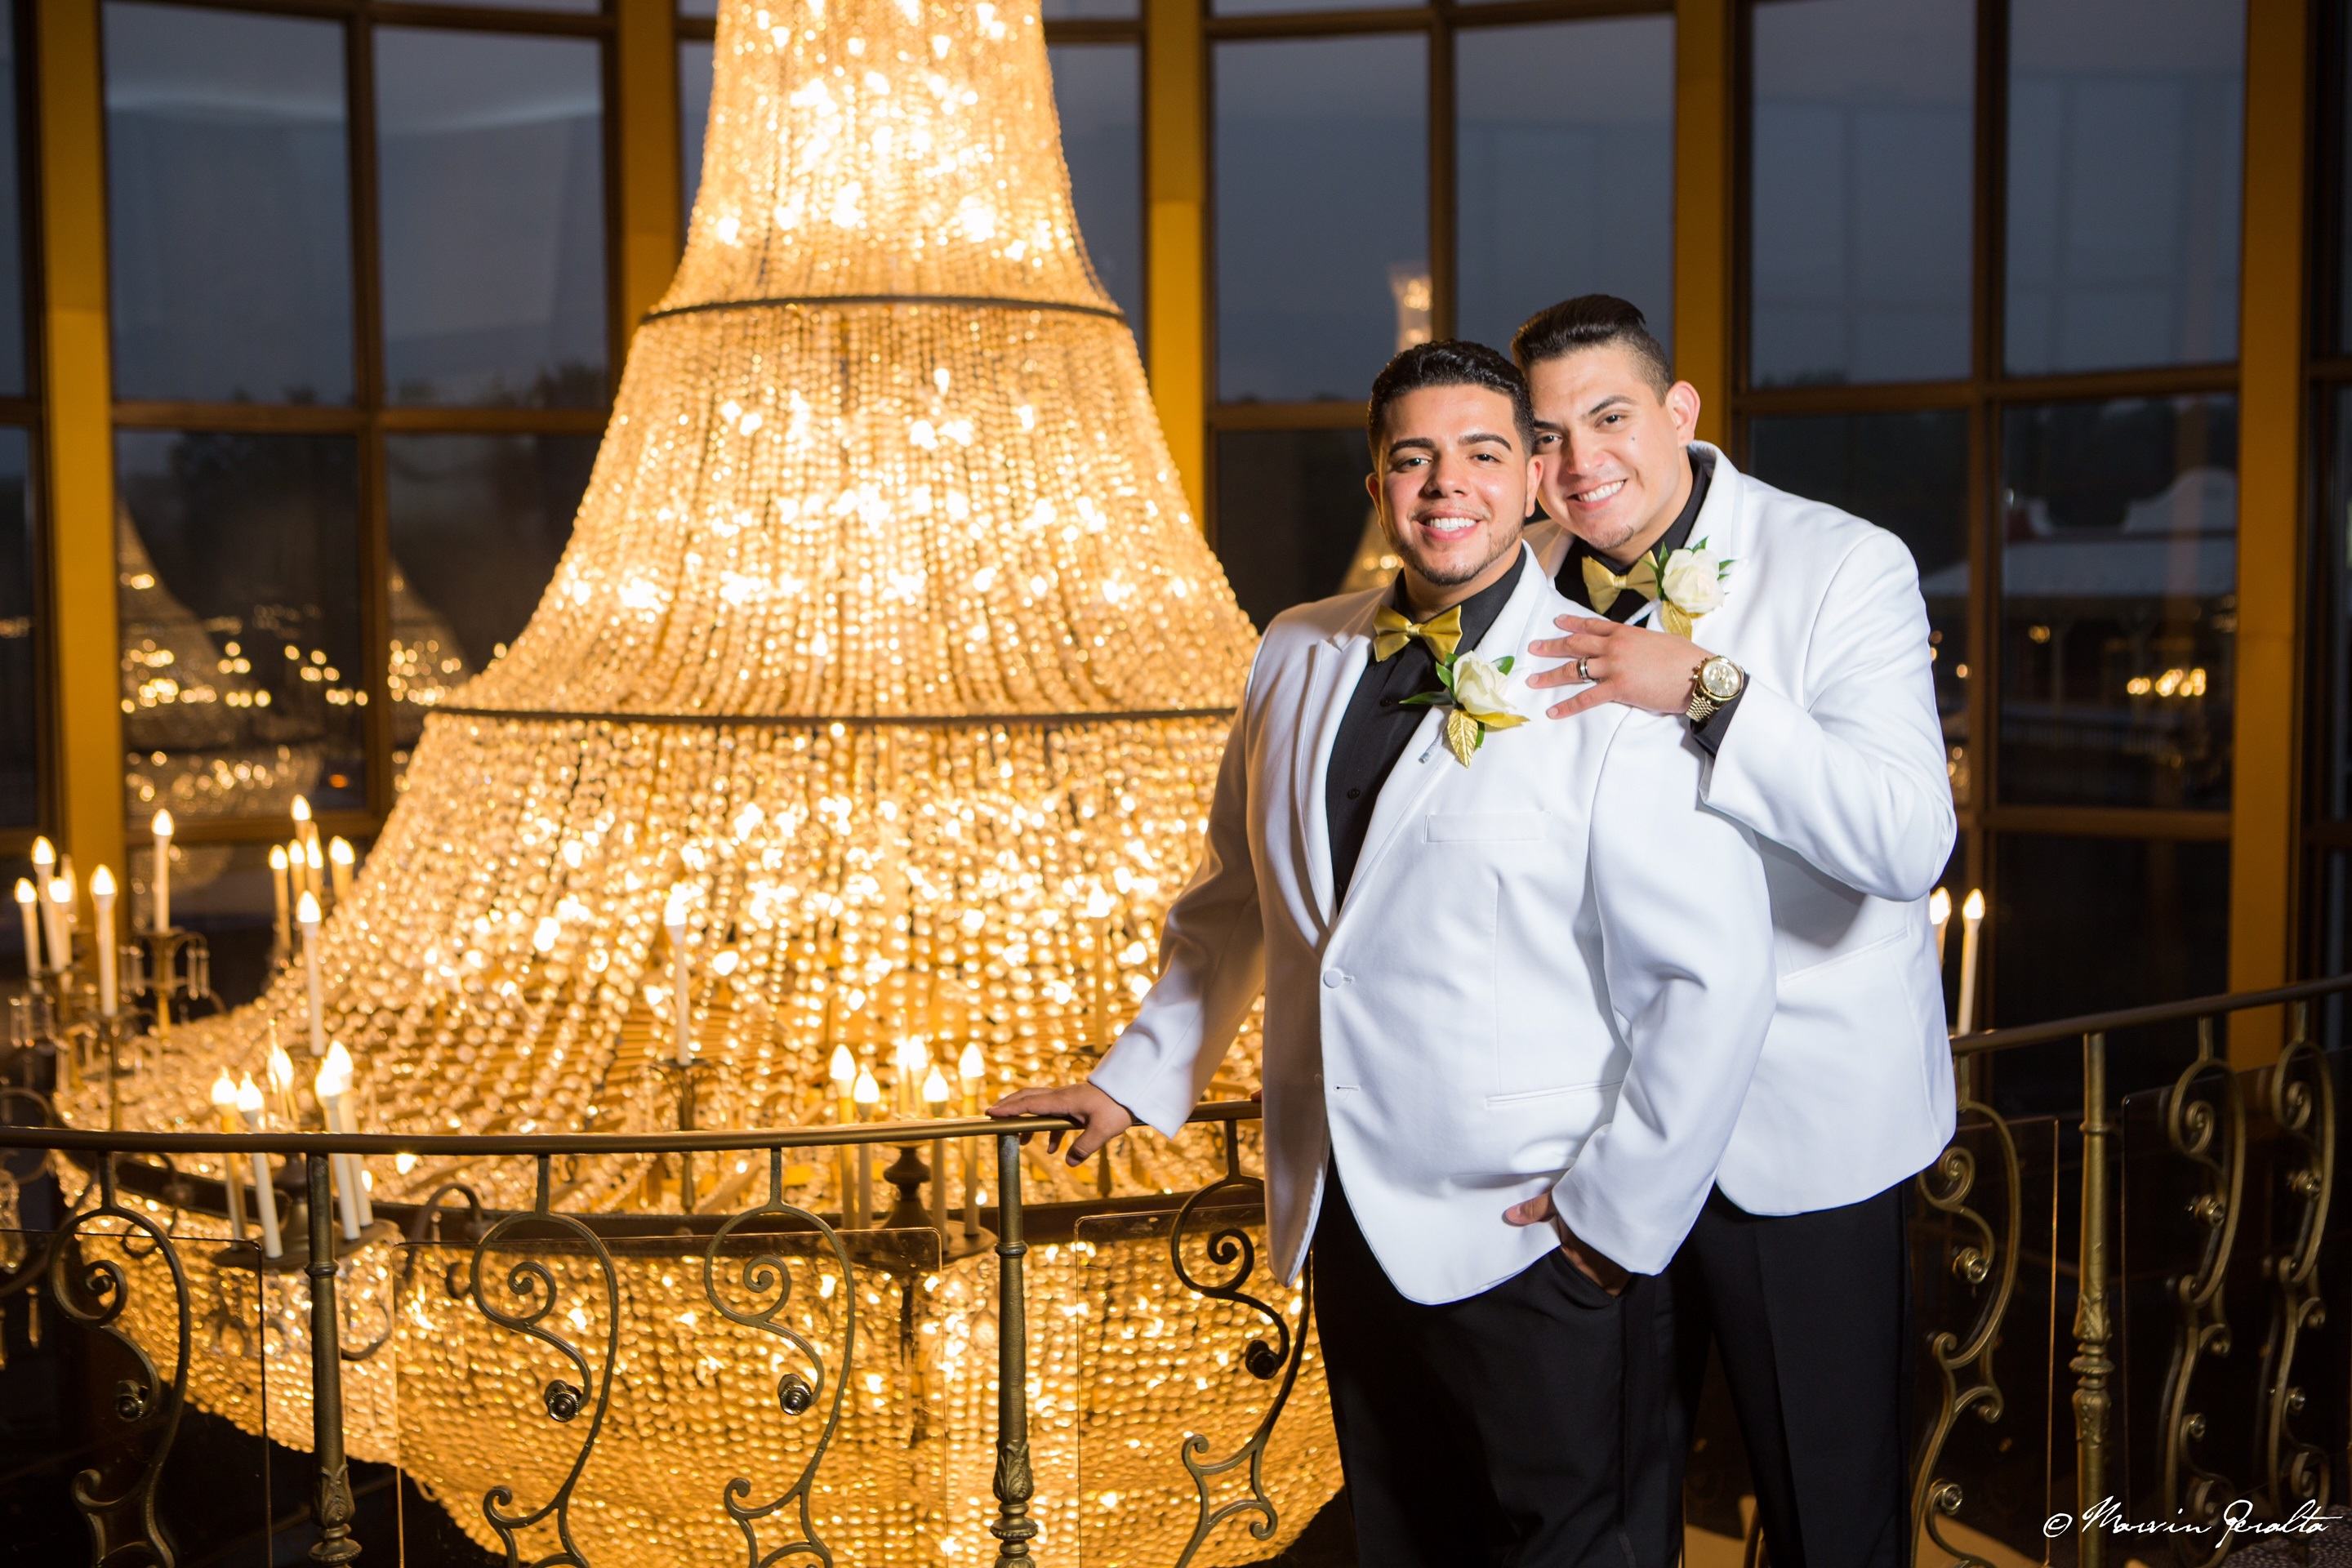 Jonathan Justiniano Ruiz Class of 2008 and his husband standing next to a large chandelier.